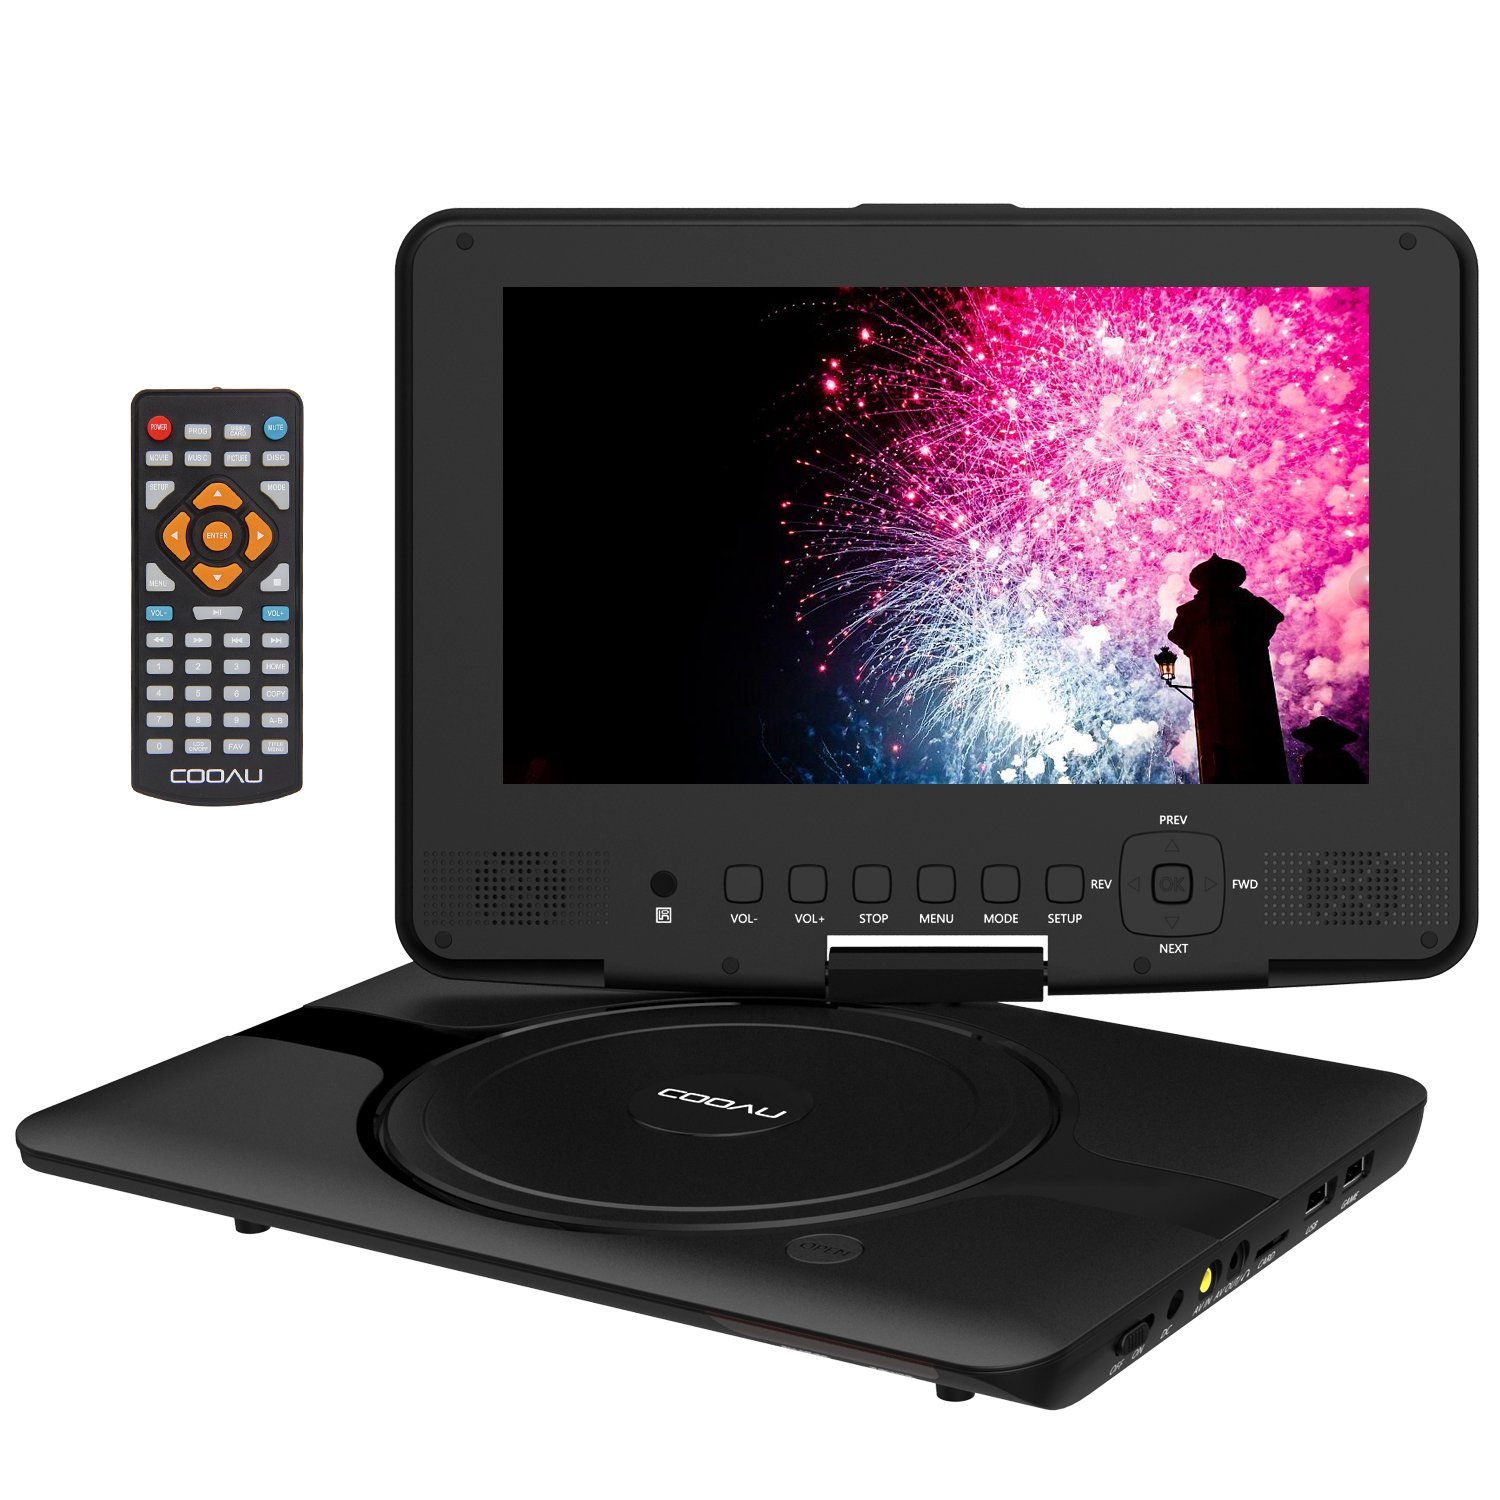 COOAU 12'' Kids Portable DVD Player with 9'' Swivel Screen, 5 Hours Rechargeable Battery, Remote Controller, Car Charger, Support TF Card/USB/Sync Screen/1080P Video Playback, Black